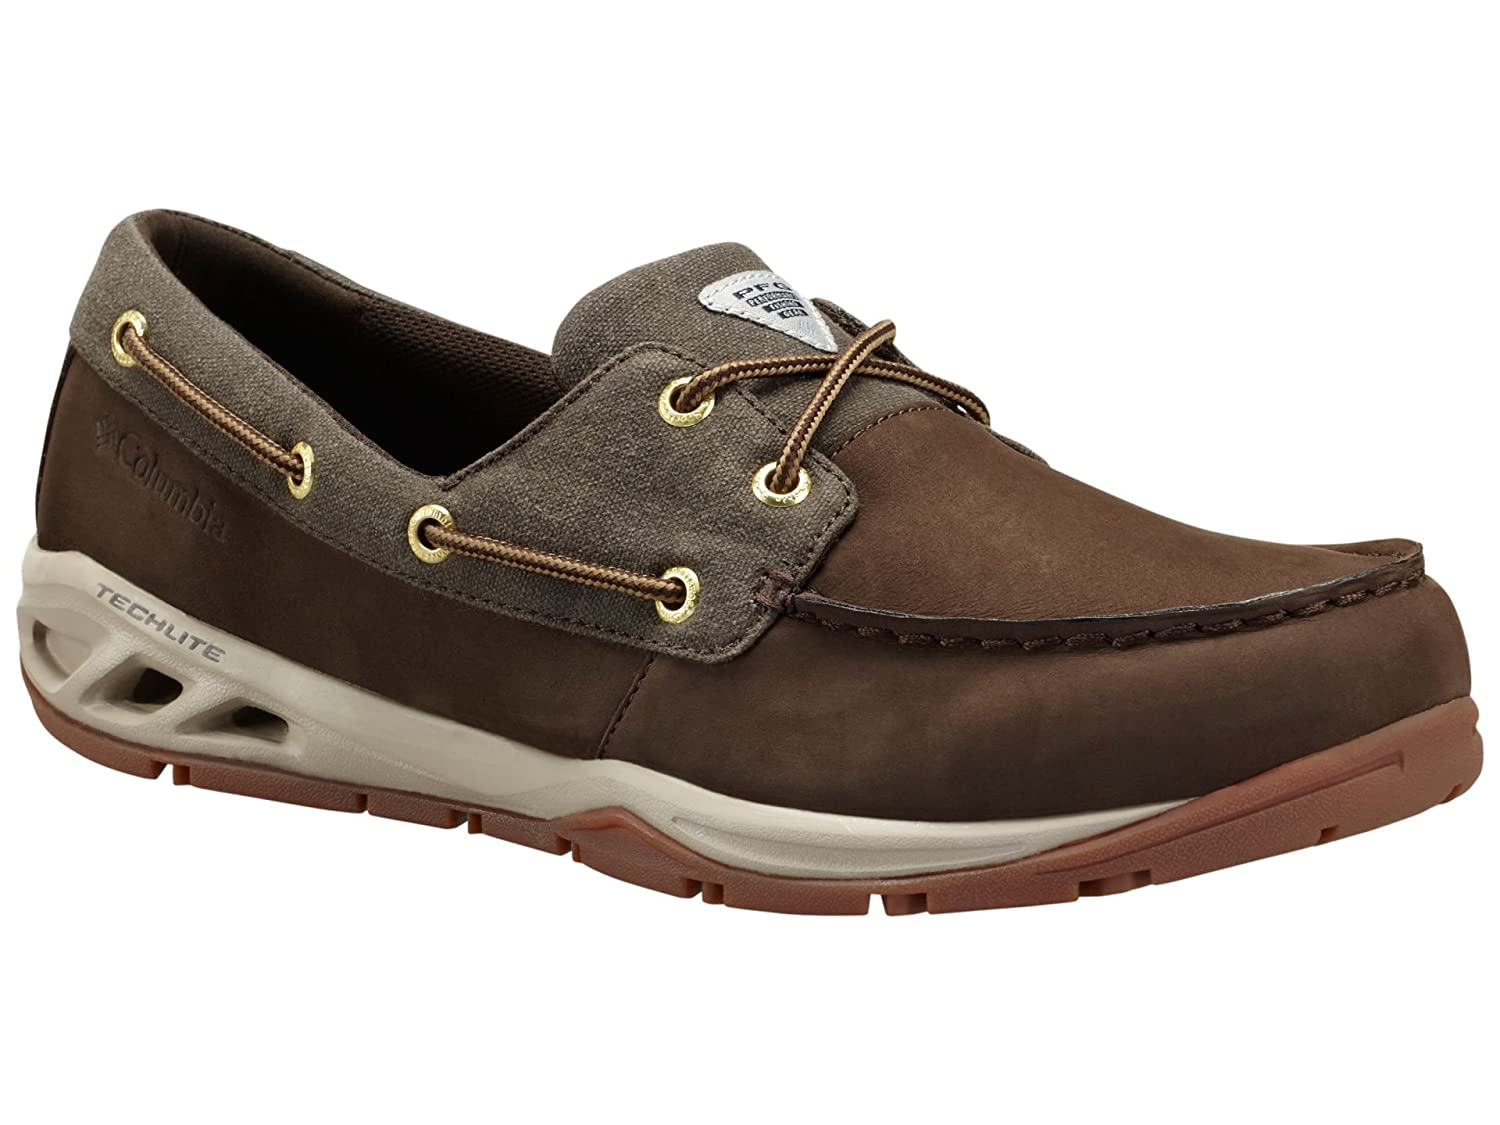 Columbia Boatdrainer Fly PFG, Mocasines para Hombre: Amazon.es: Zapatos y complementos